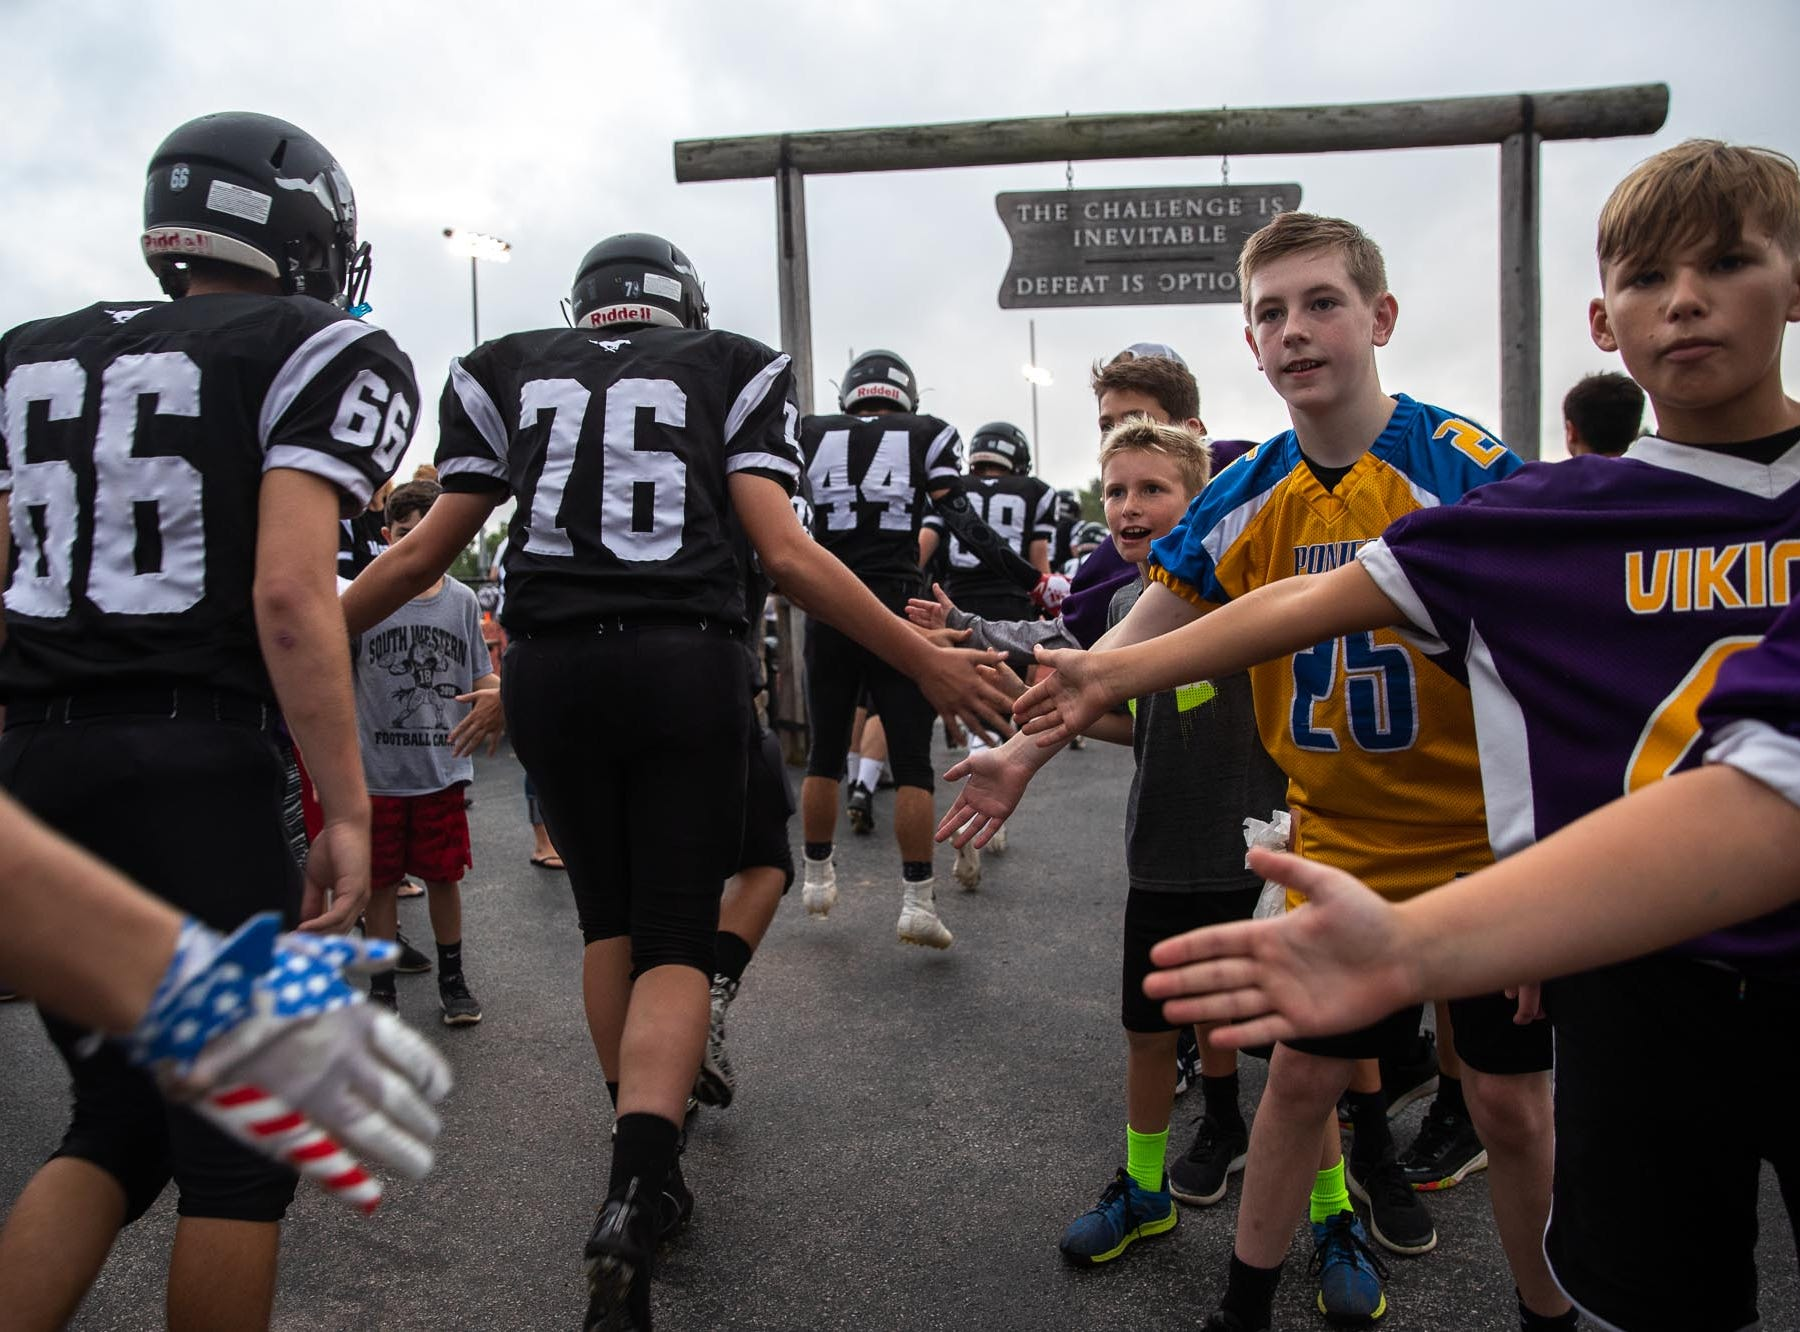 South Western players shake hands with children as they enter the field before a football game between South Western and Dallastown, Friday, Sept. 14, 2018, at South Western High School in Penn Township. Dallastown won, 35-7.